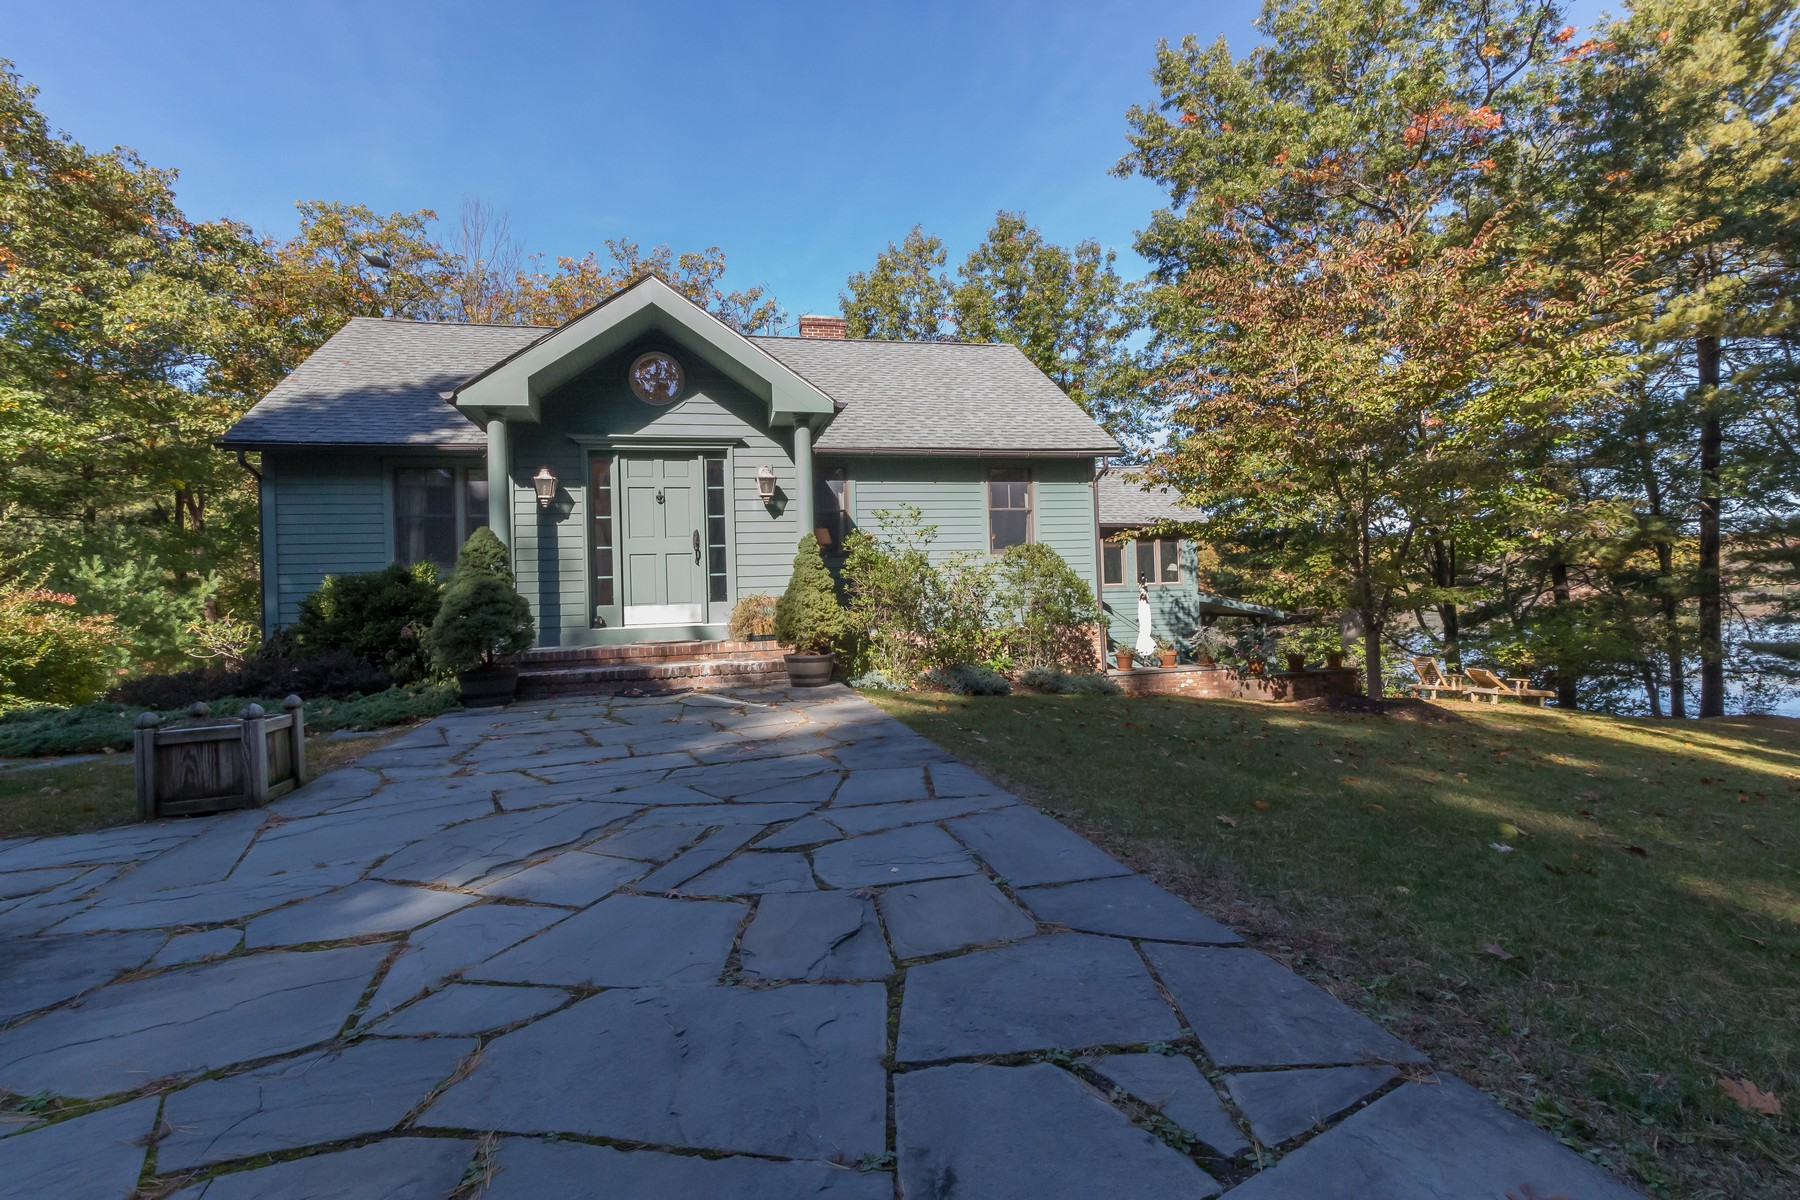 Multi-Family Home for Sale at Private Lake Cottages Amidst Mountains & Woodland 152-154 Beach Rd Pine Plains, New York 12567 United States